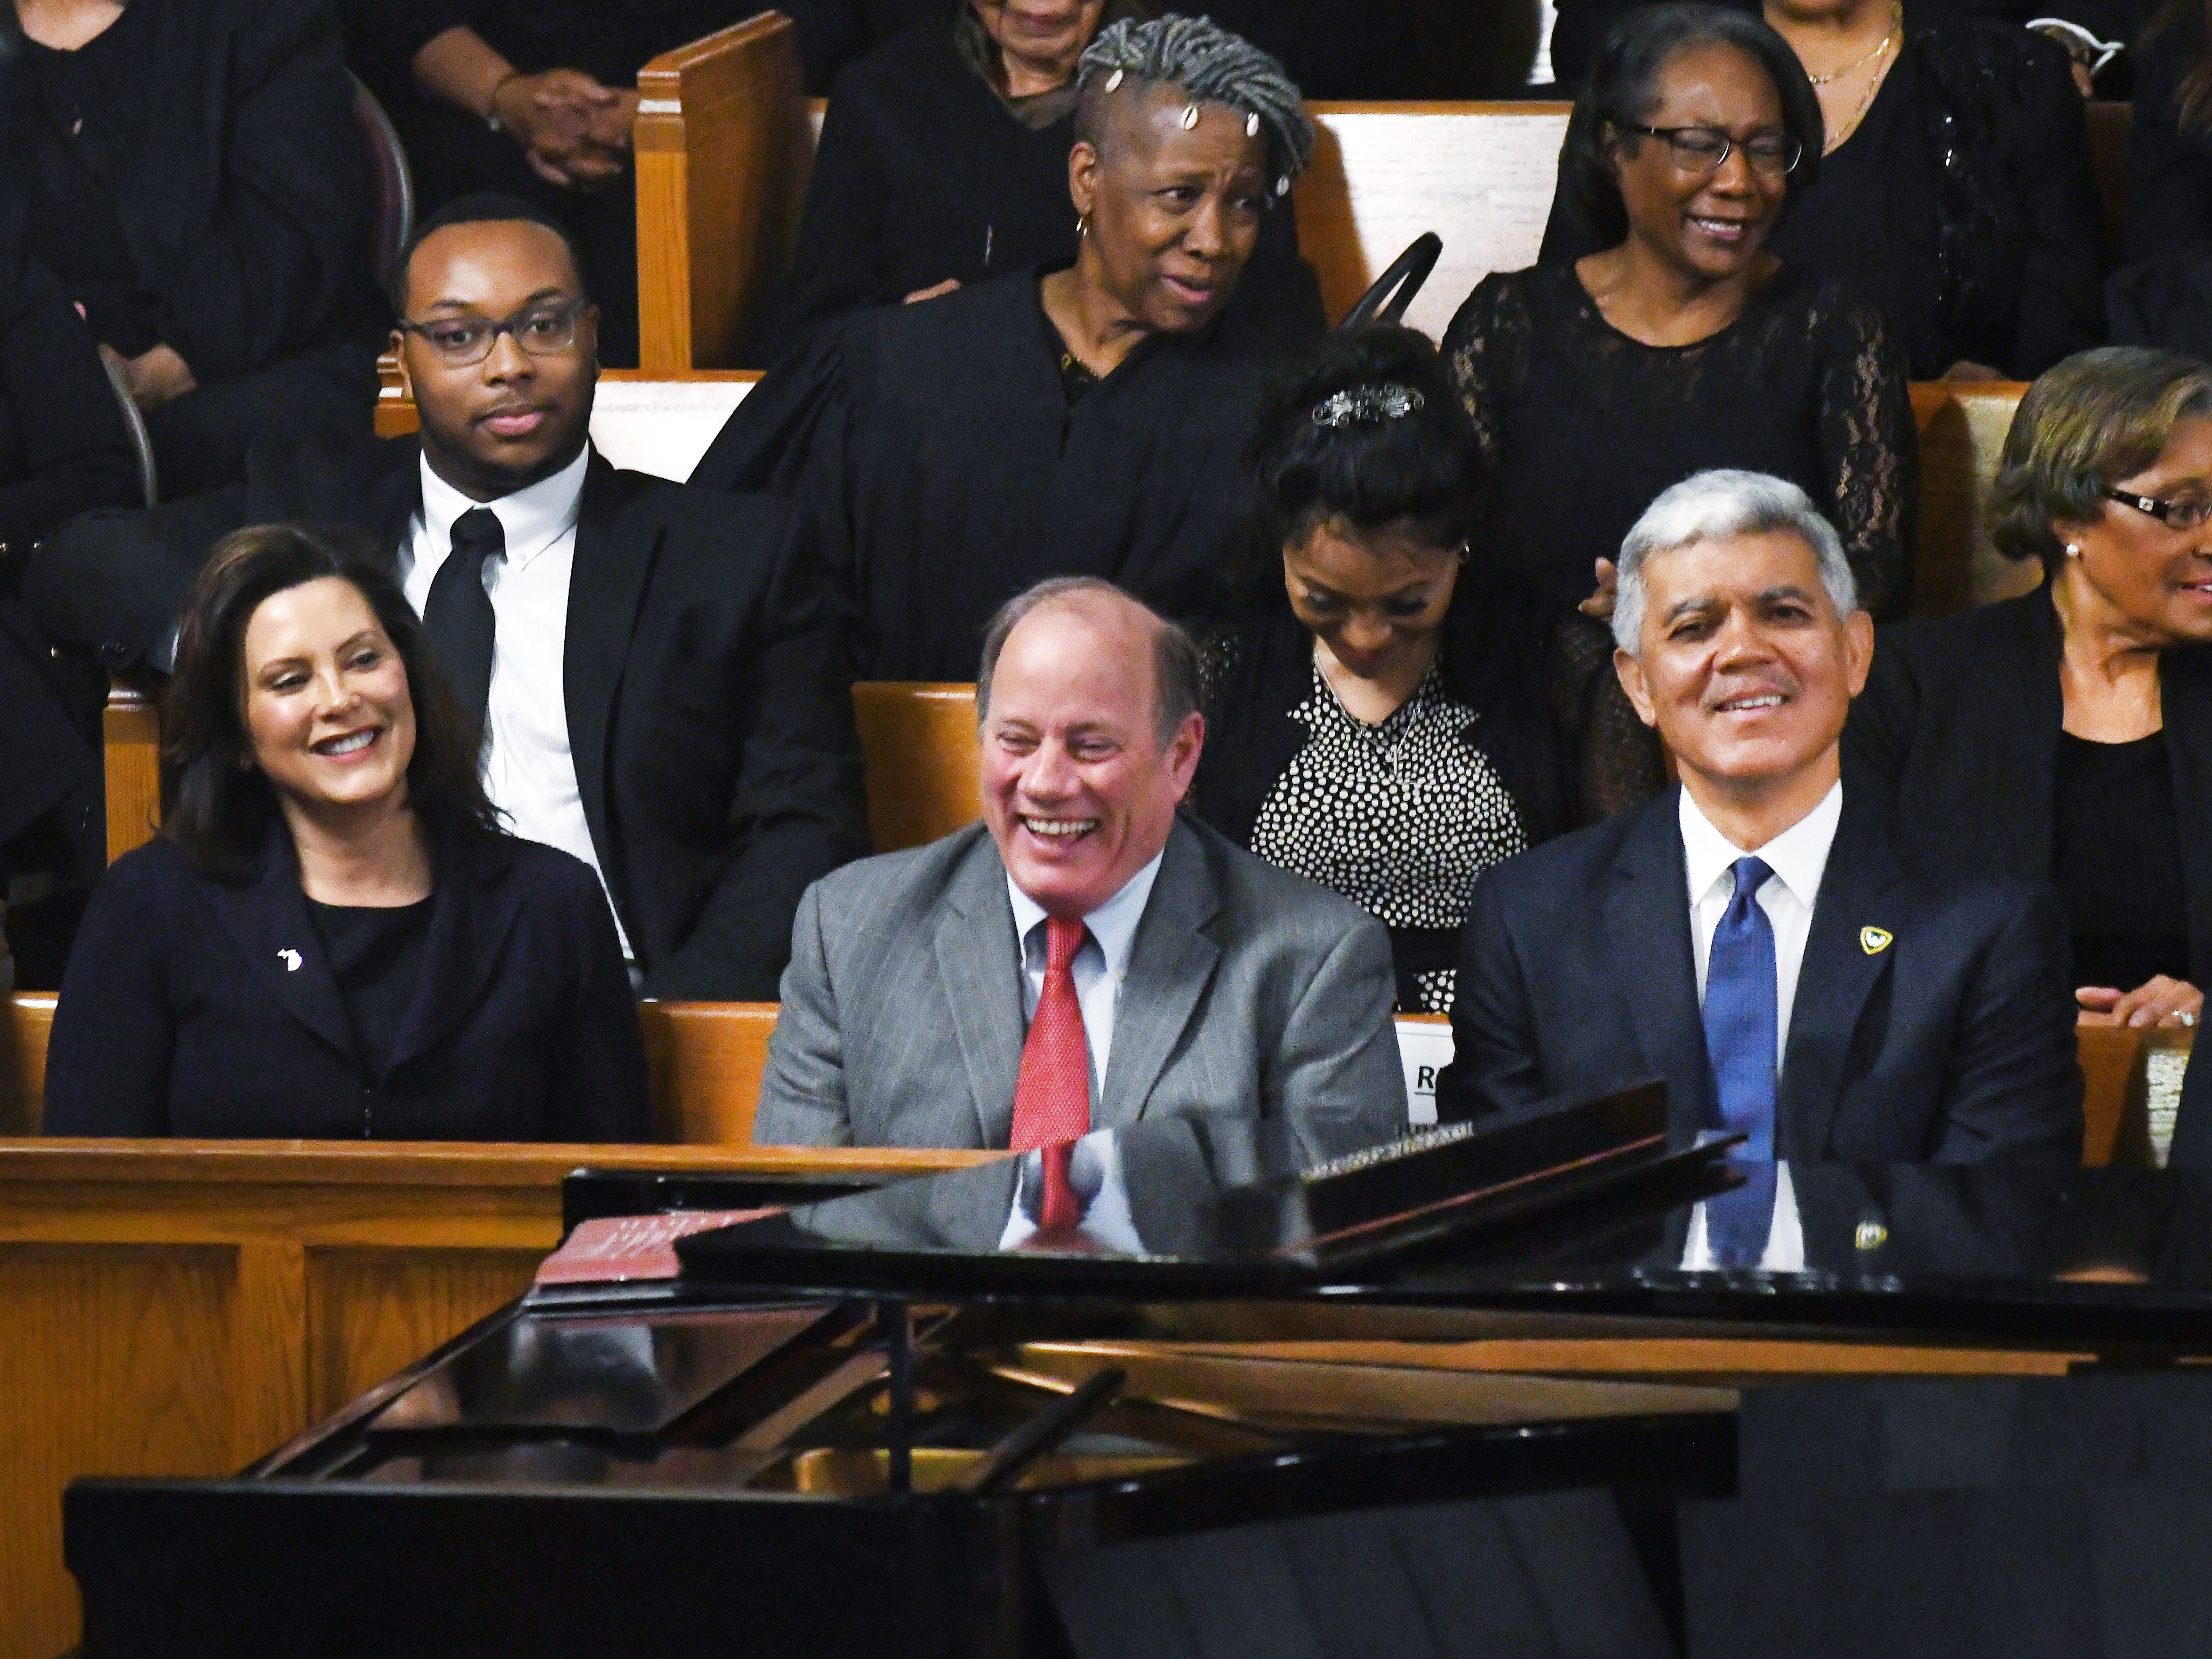 Michigan Governor Gretchen Whitmer, Detroit Mayor Mike Duggan and Wayne State University President Dr. M. Roy Wilson laugh during a lighter moment at the funeral.